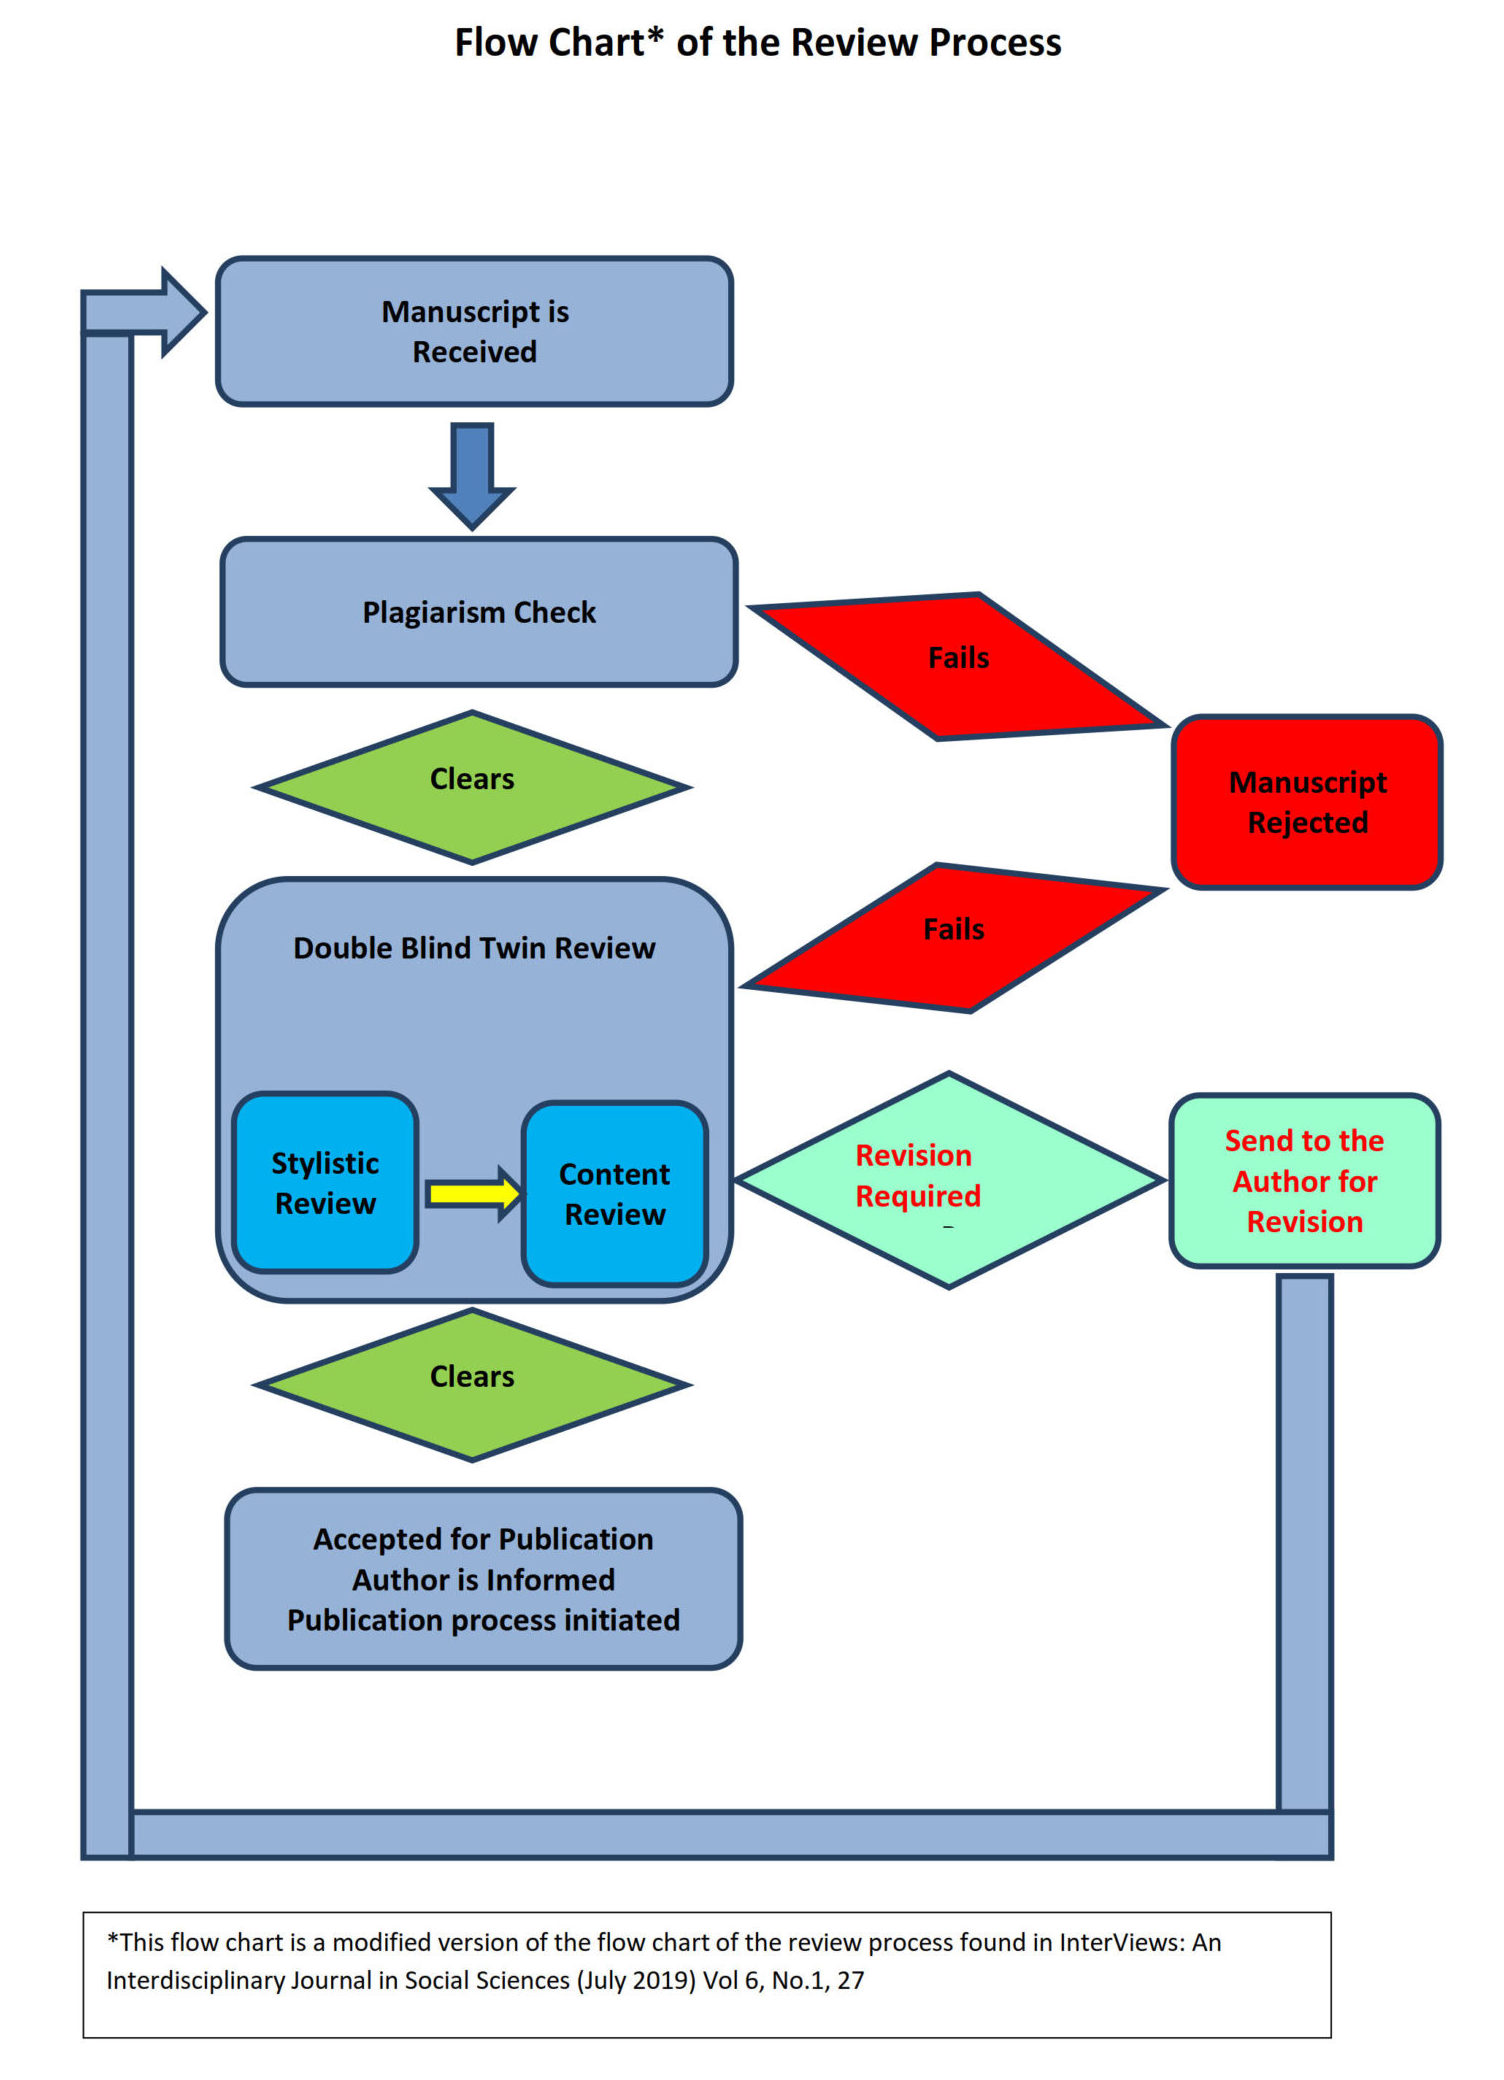 Flow Chart of the Review Process